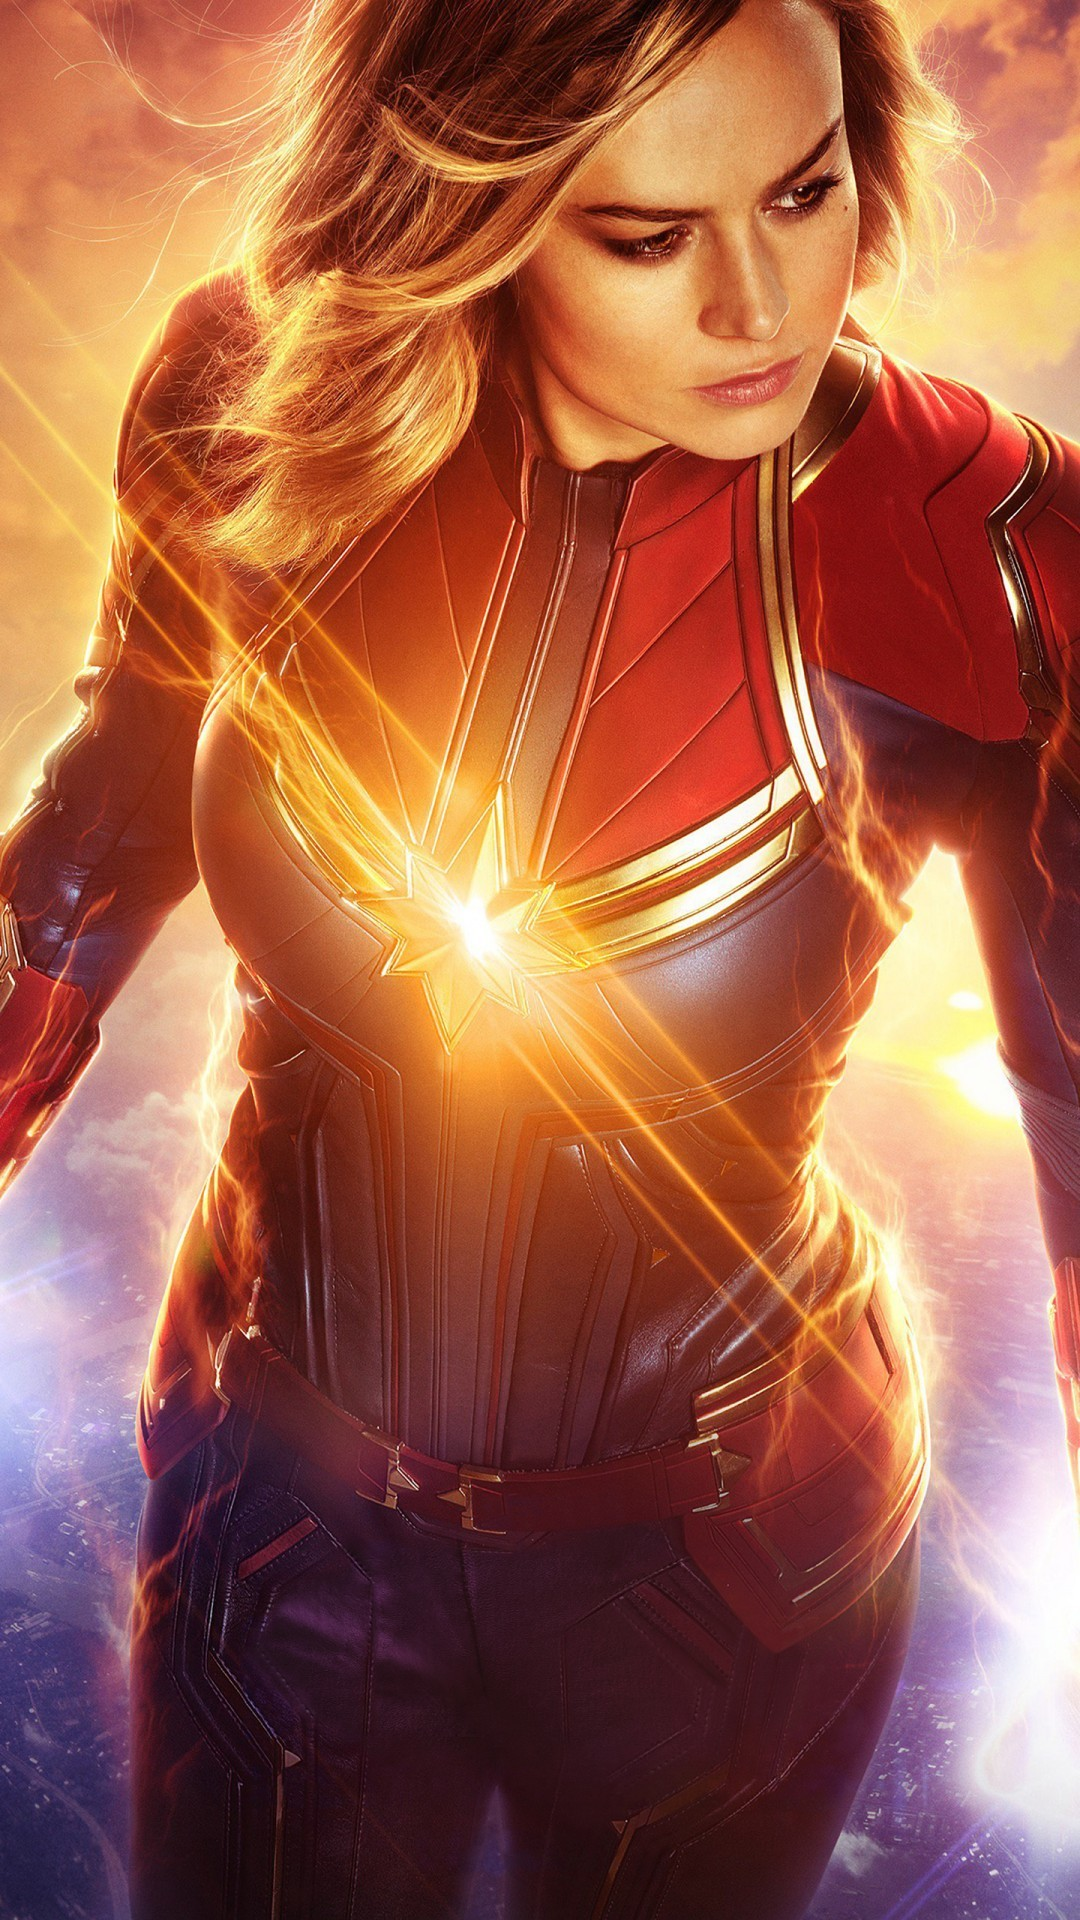 Free Brie Larson as Captain Marvel phone wallpaper by baylan_10